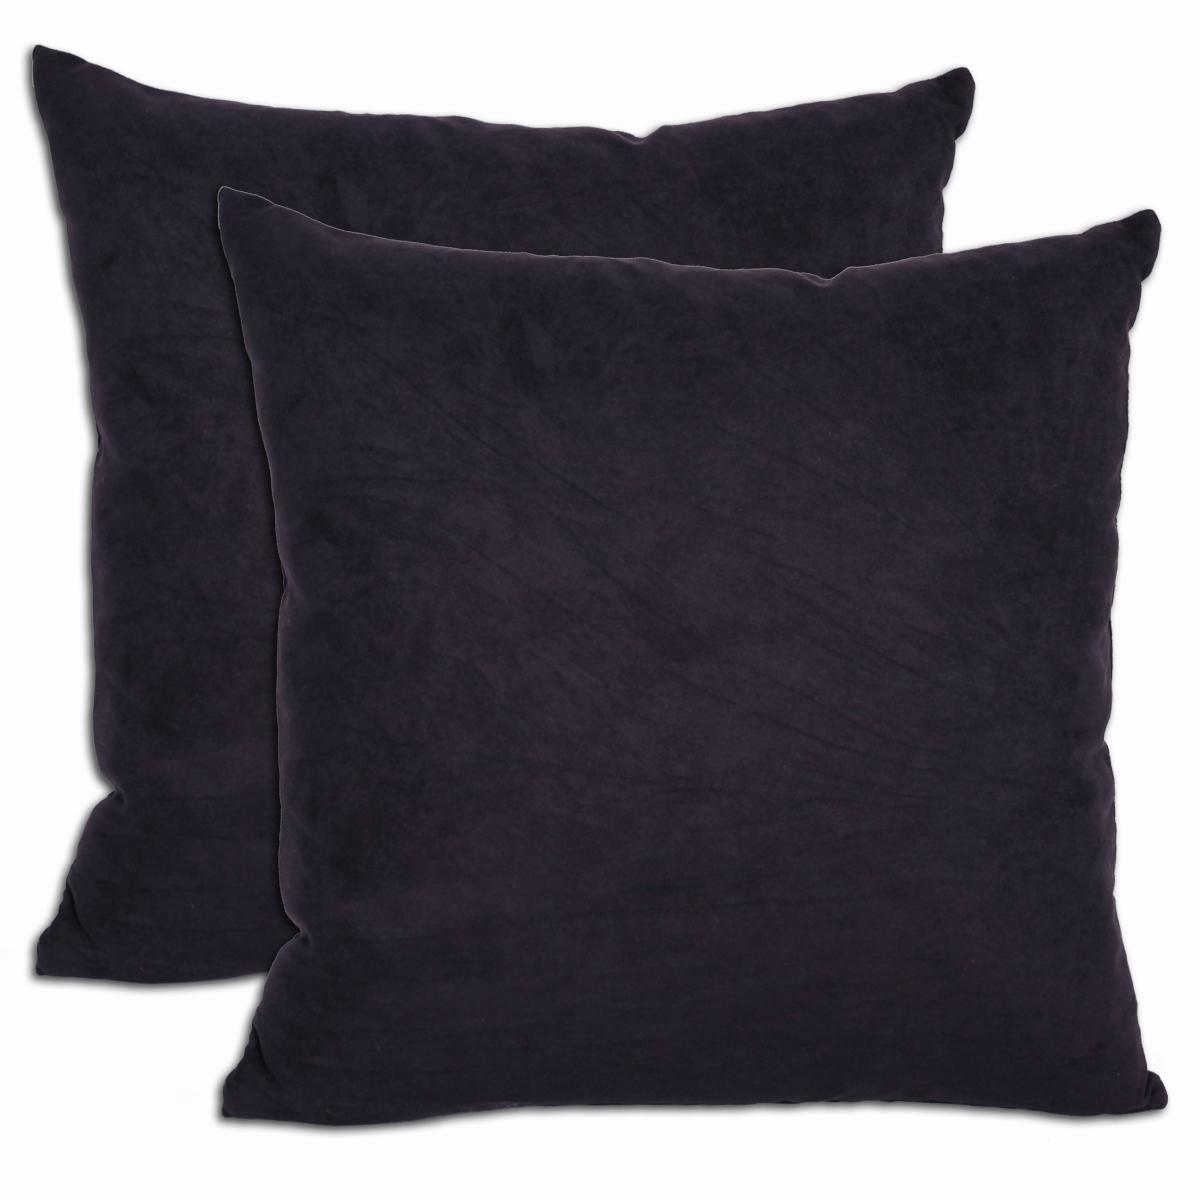 Shop Black Microsuede Feather And Down Filled Throw